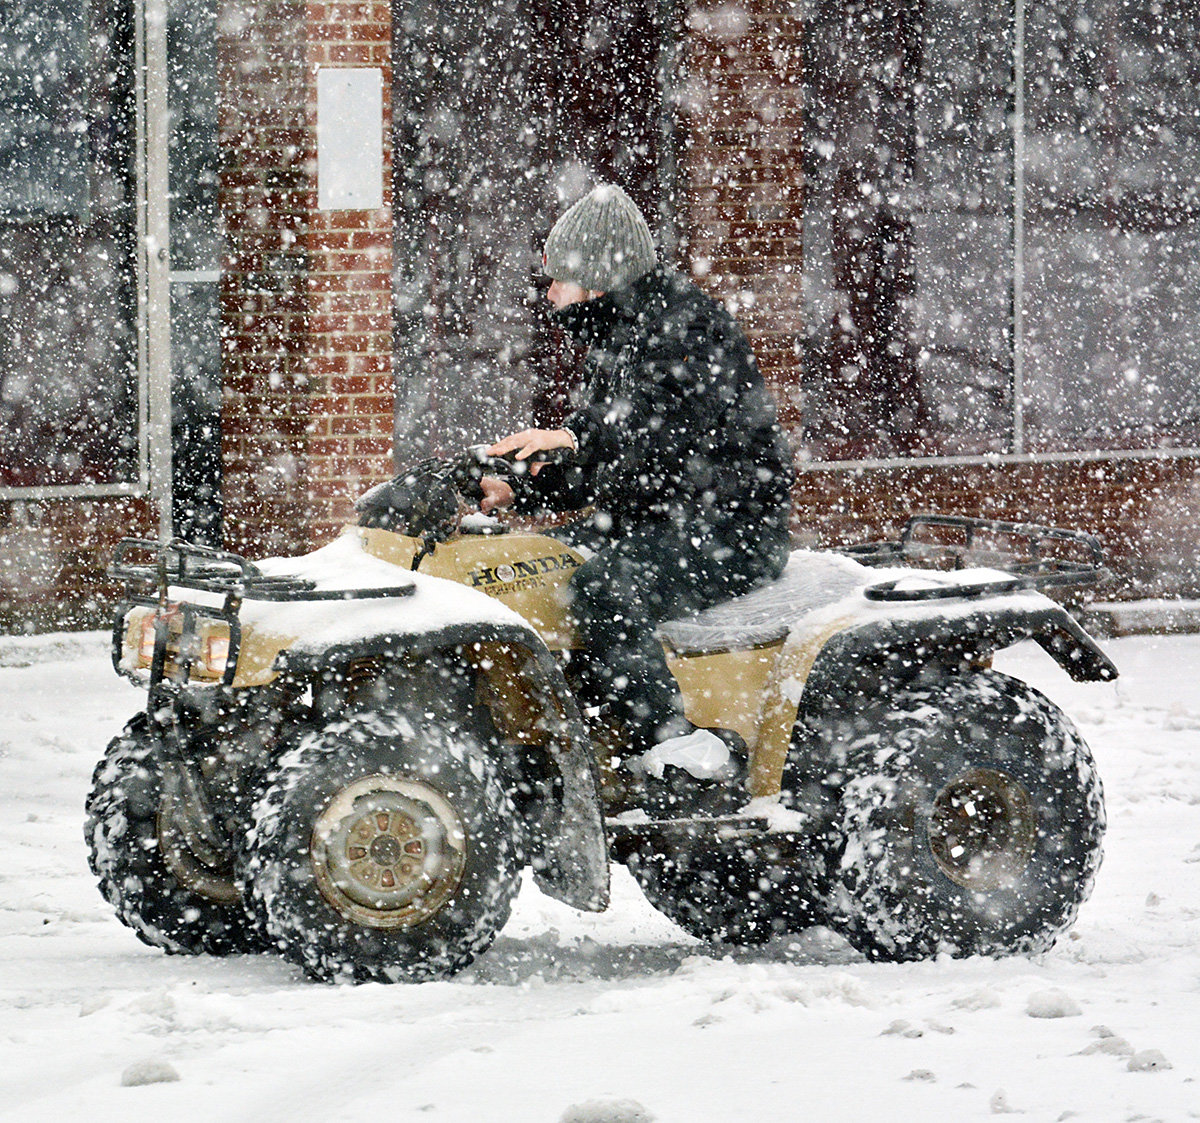 A four-wheeler was one mode of transportation that was used during Monday's snowstorm.